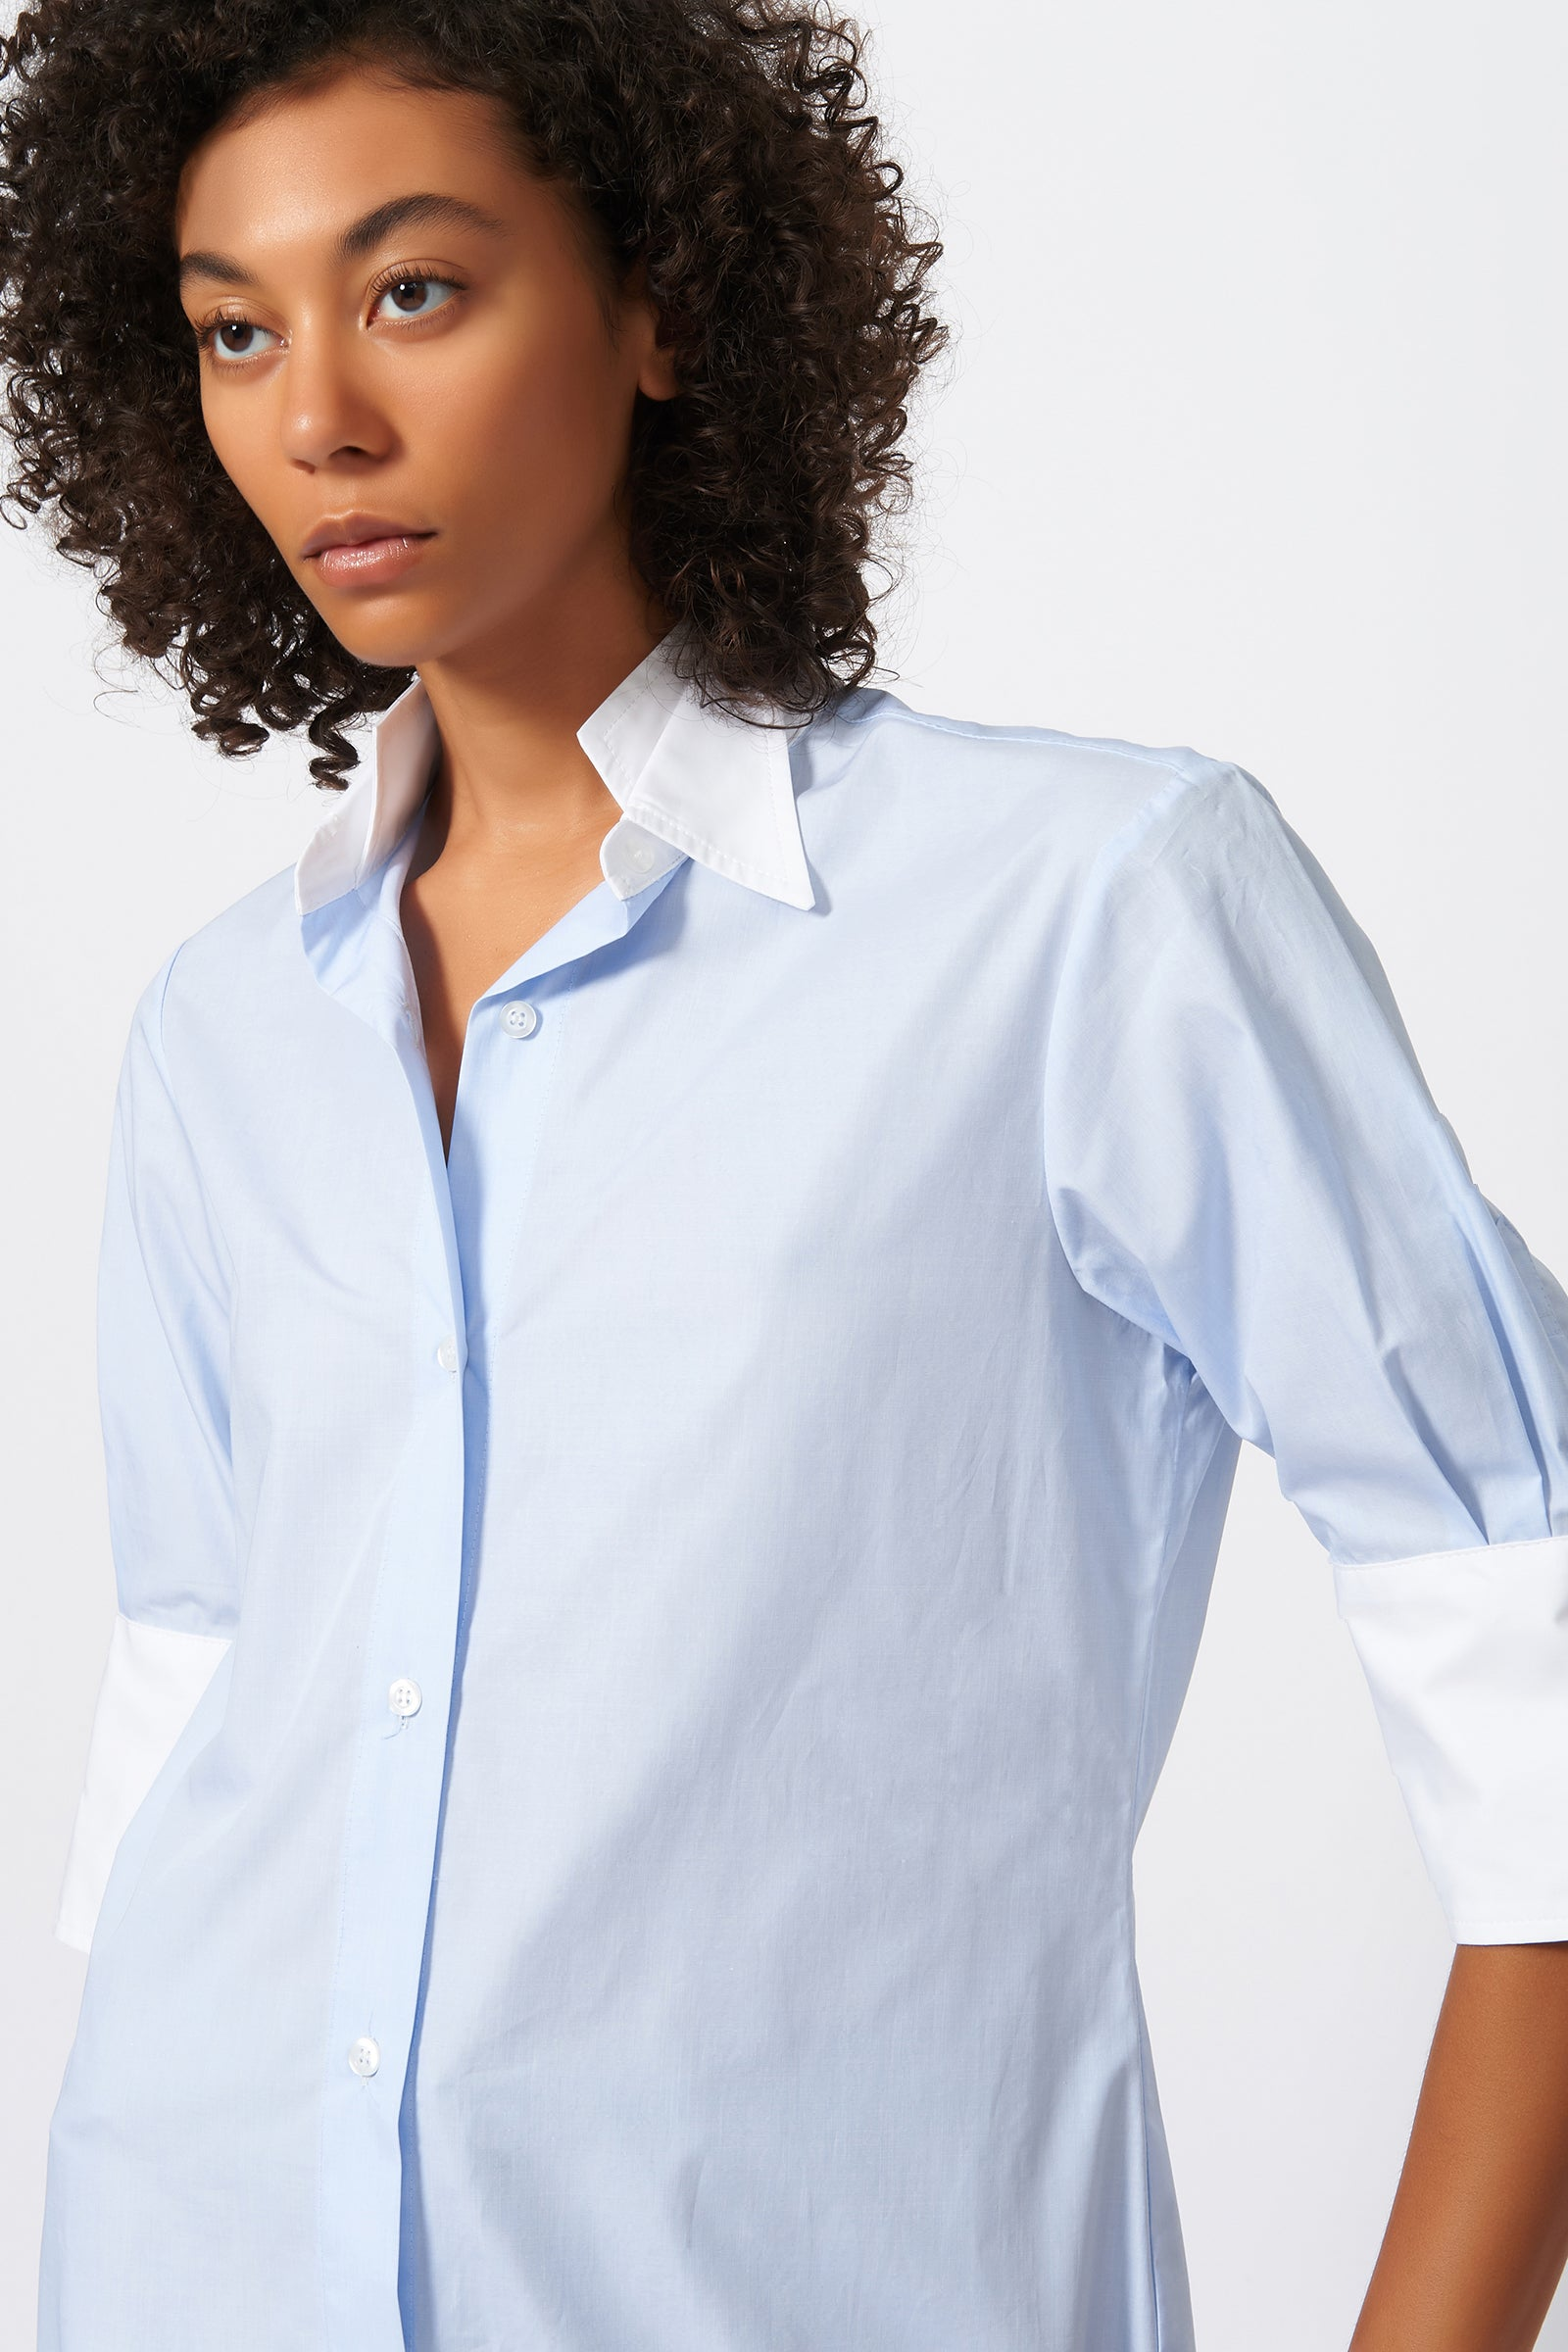 Kal Rieman Double Collar Shirt in Oxford and White Cotton Poplin on Model Front Detail View